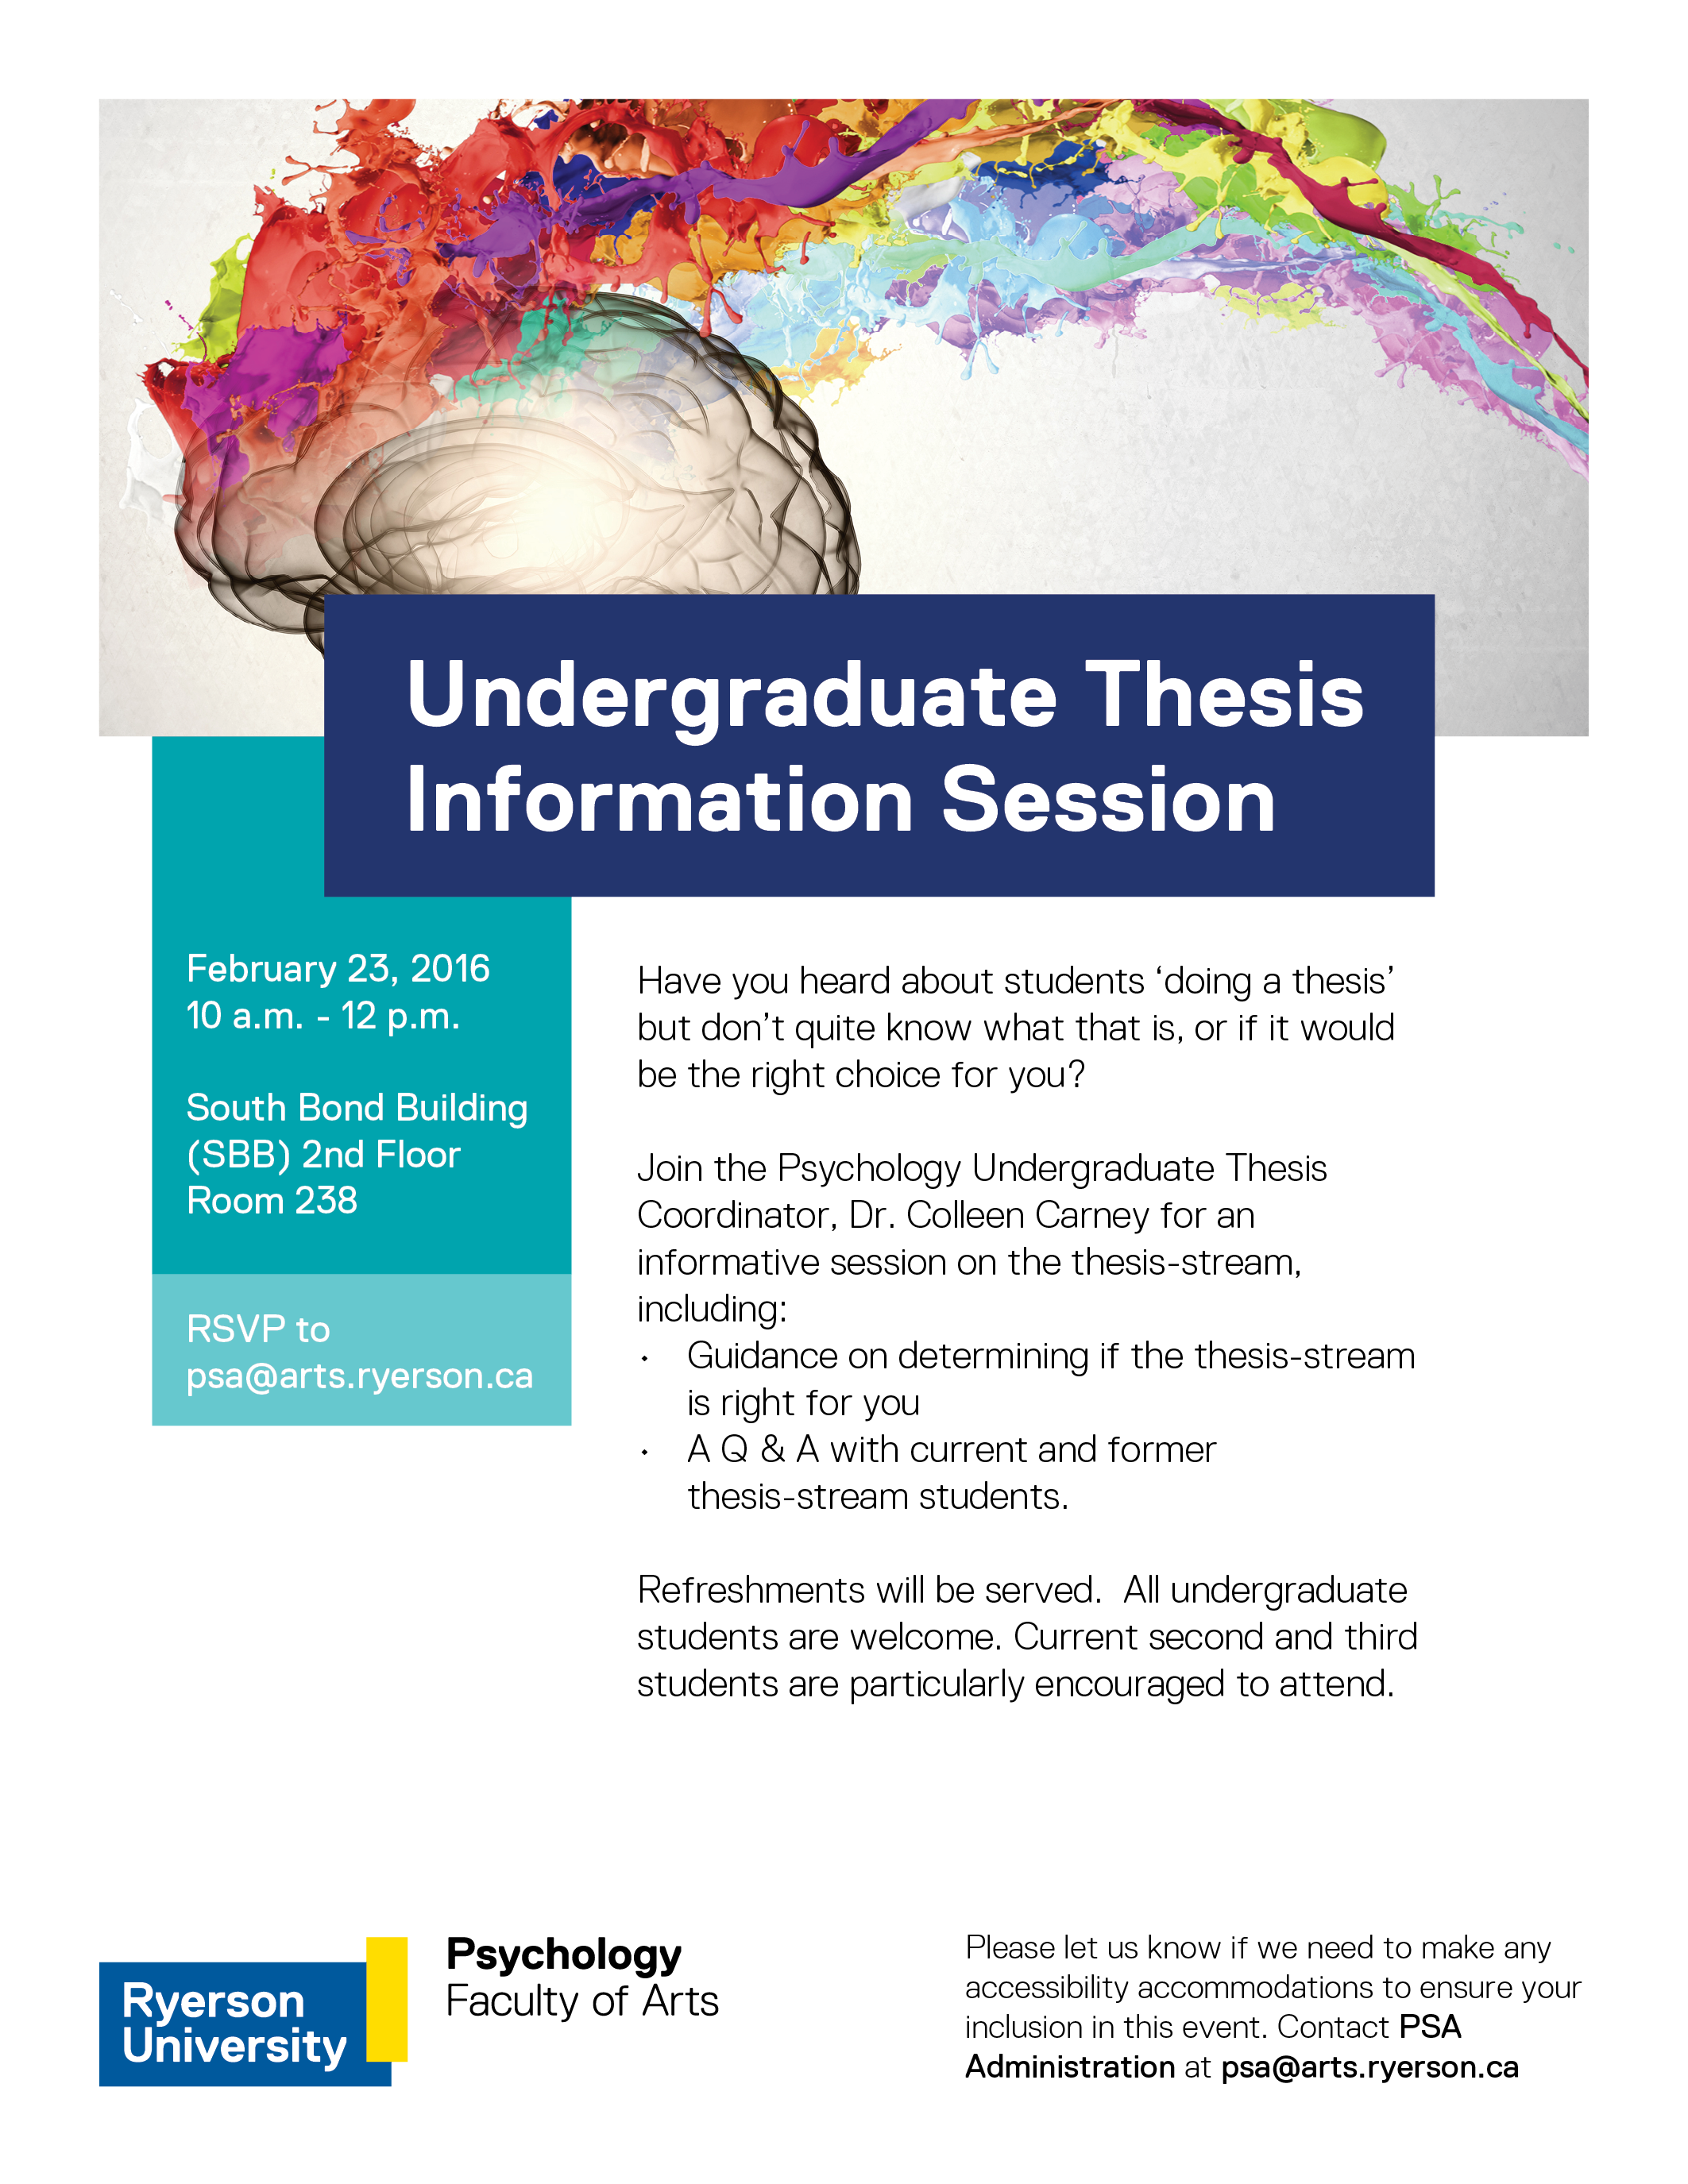 best undergraduate thesis The selection of the best senior thesis will be done by a committee of two faculty members and one undergraduate advisor according to the criteria below announcement of the award the announcement of the best senior thesis award will take place at the departmental graduation ceremony on graduation day.